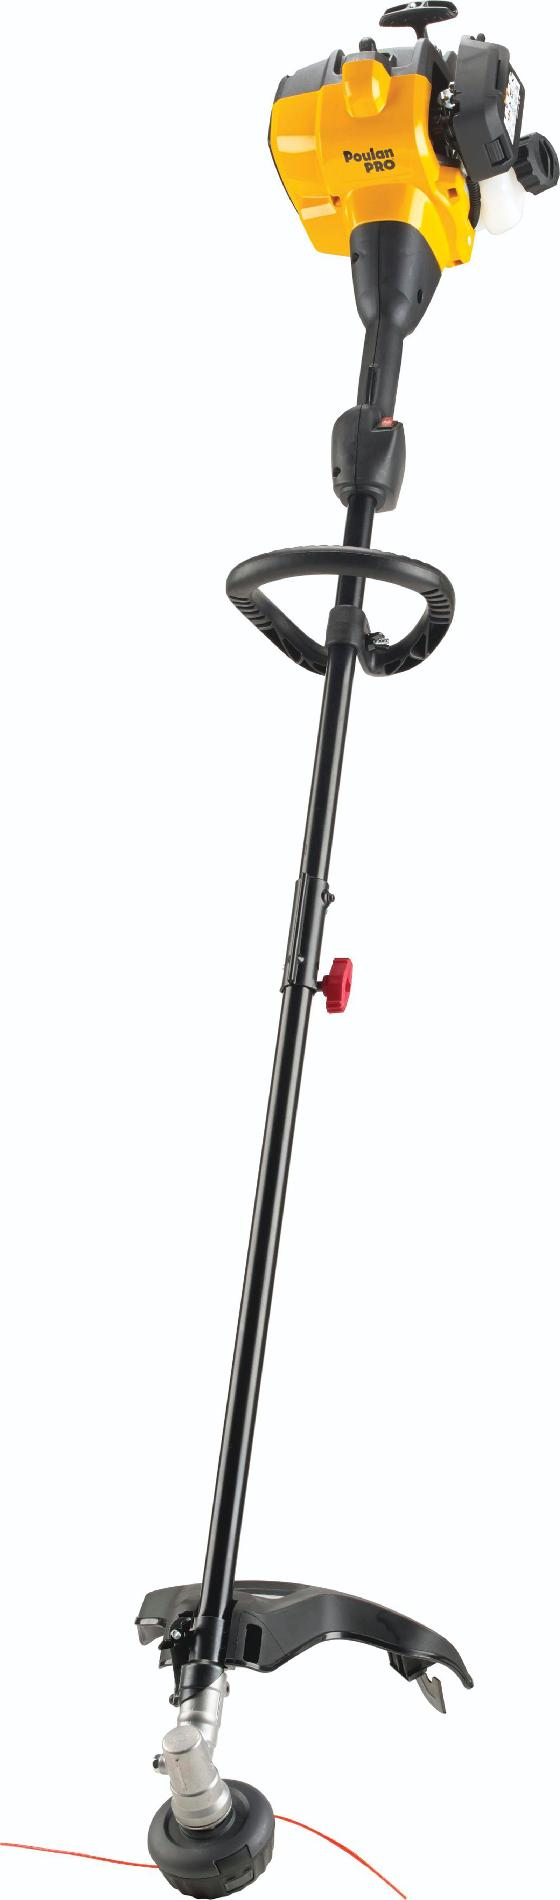 Poulan Pro 28cc 2-Cycle Straight Shaft Gas Trimmer